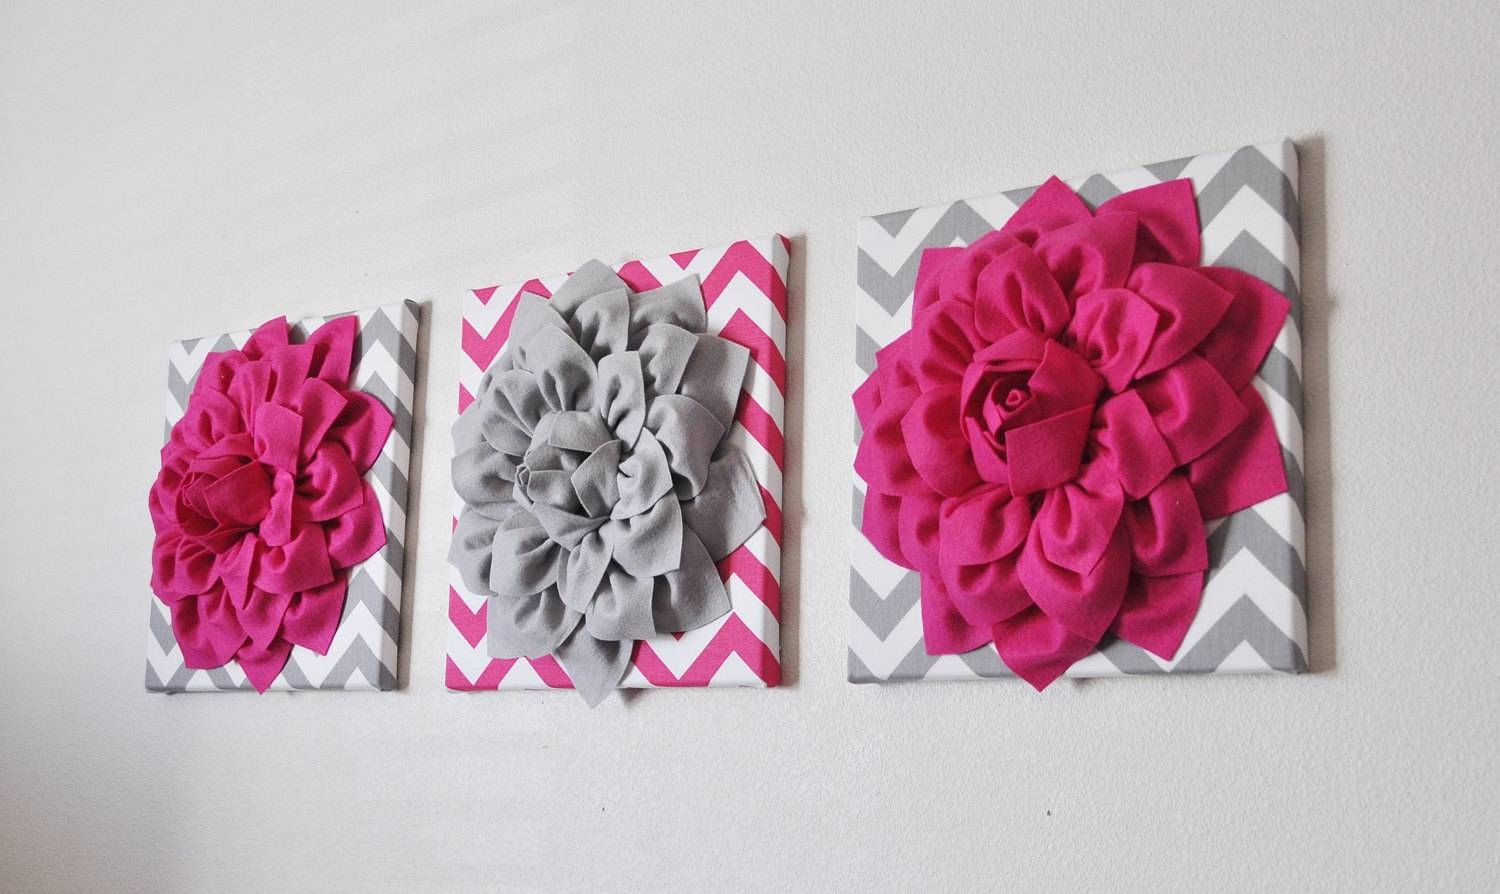 Custom Nursery Decor Flower Wall Art Hot Pink And Grey Within Most Up To Date Pink And Grey Wall Art (View 7 of 20)